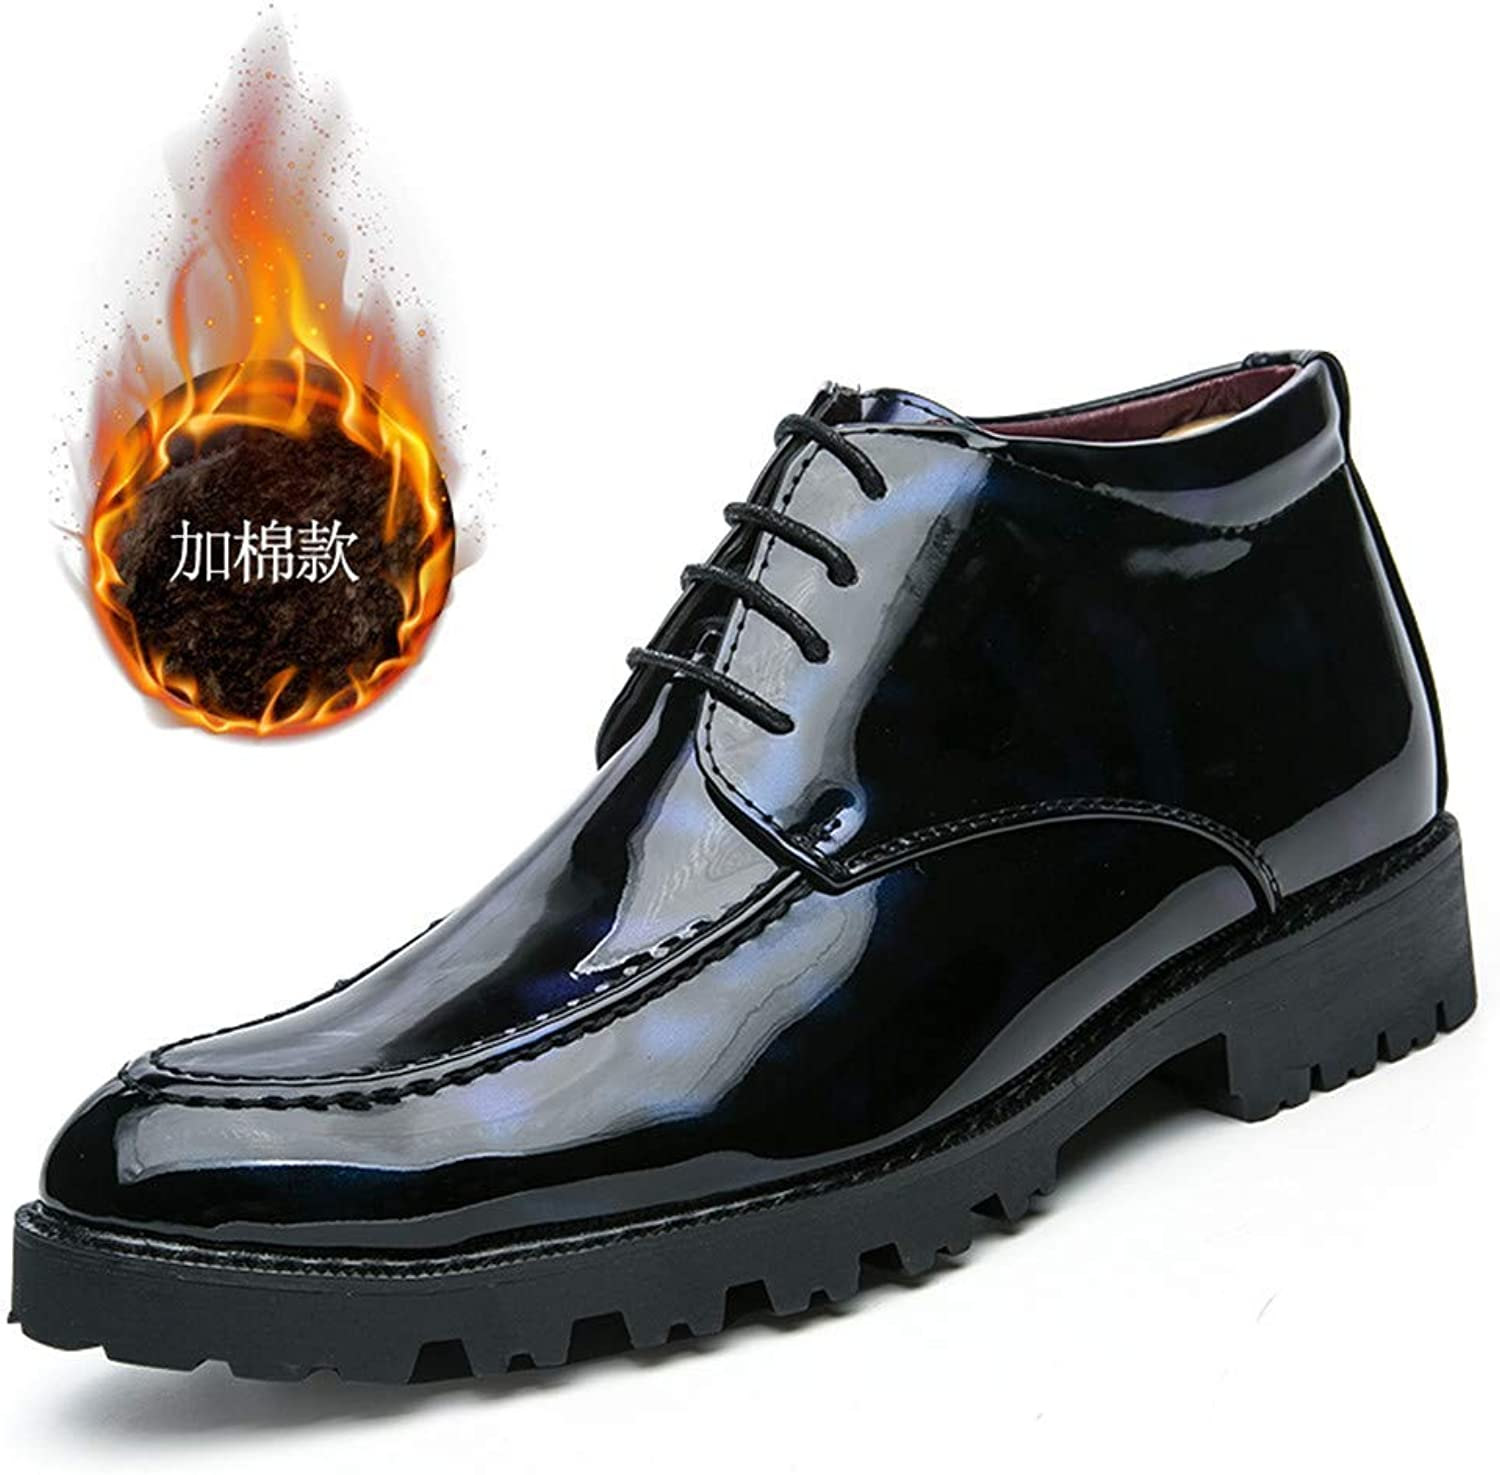 Fuxitoggo Men's Business Oxford Casual British Patent Leather Martin Boots with Plush Warm High Help Formal shoes (color  bluee, Size  43 EU) (color   Warm bluee, Size   43 EU)